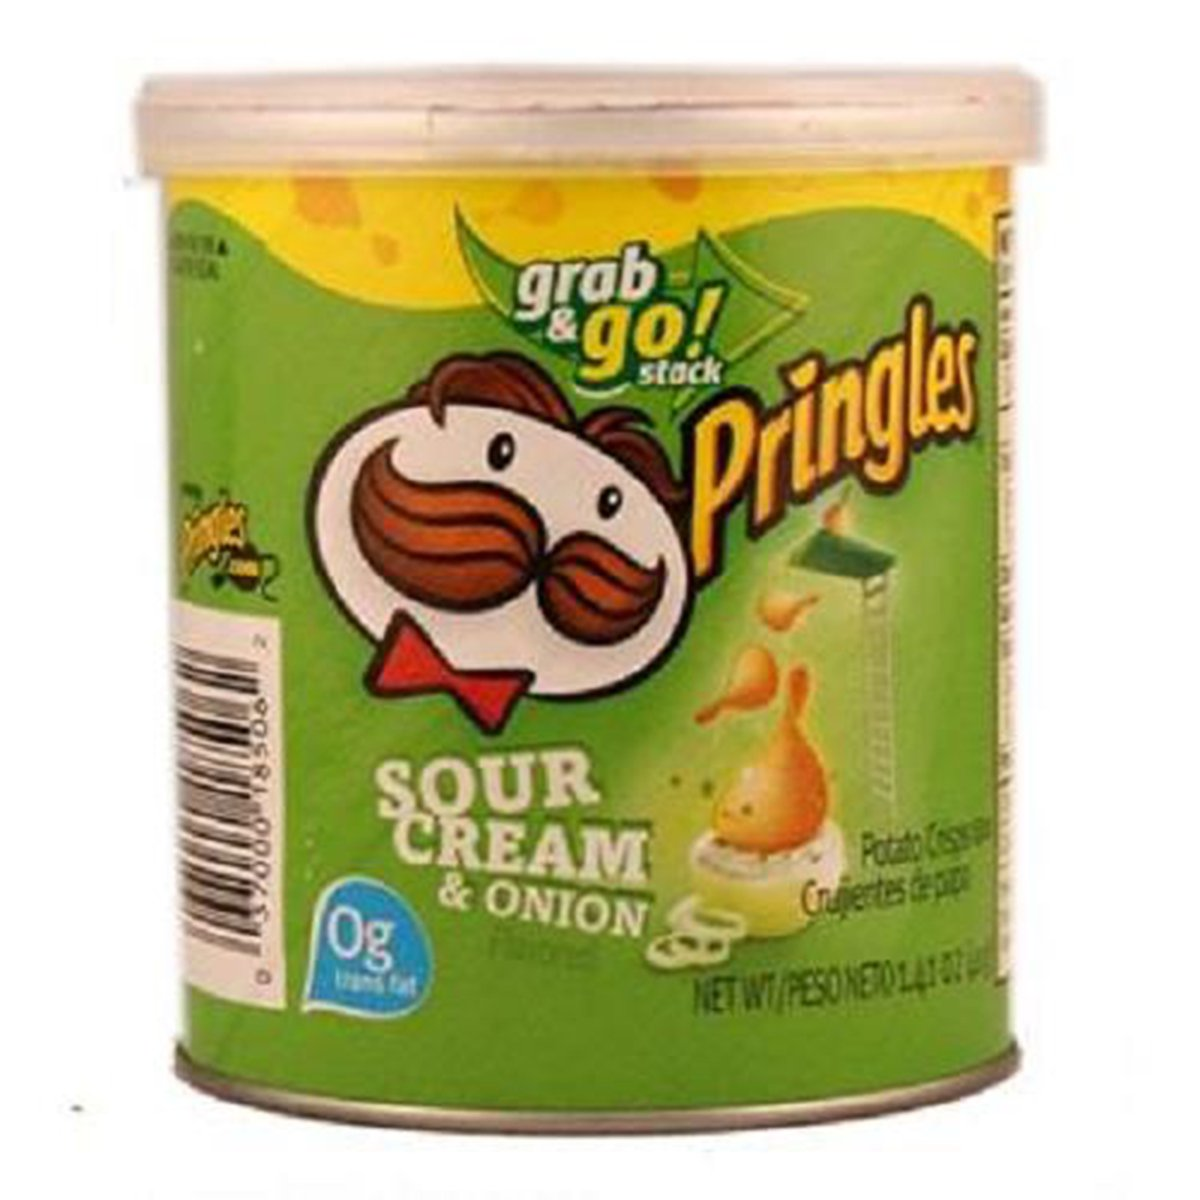 Product Of Pringles, Sour Cream & Onion - Small, Count 1 - Chips / Grab Varieties & Flavors